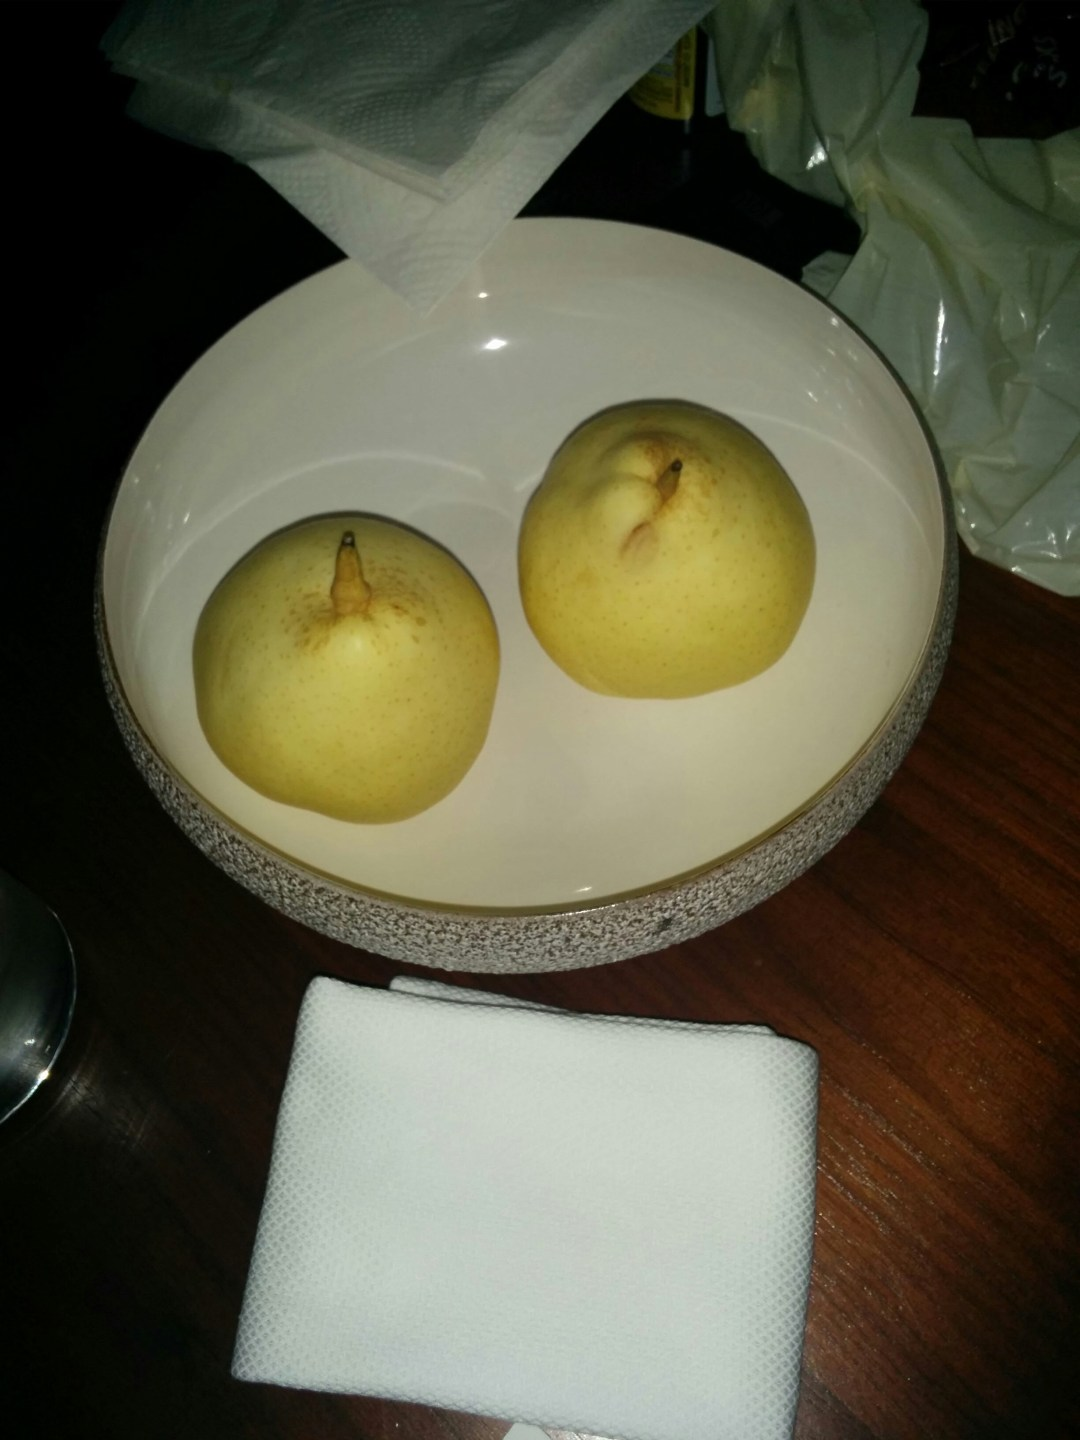 Asian pears - they were amazing!